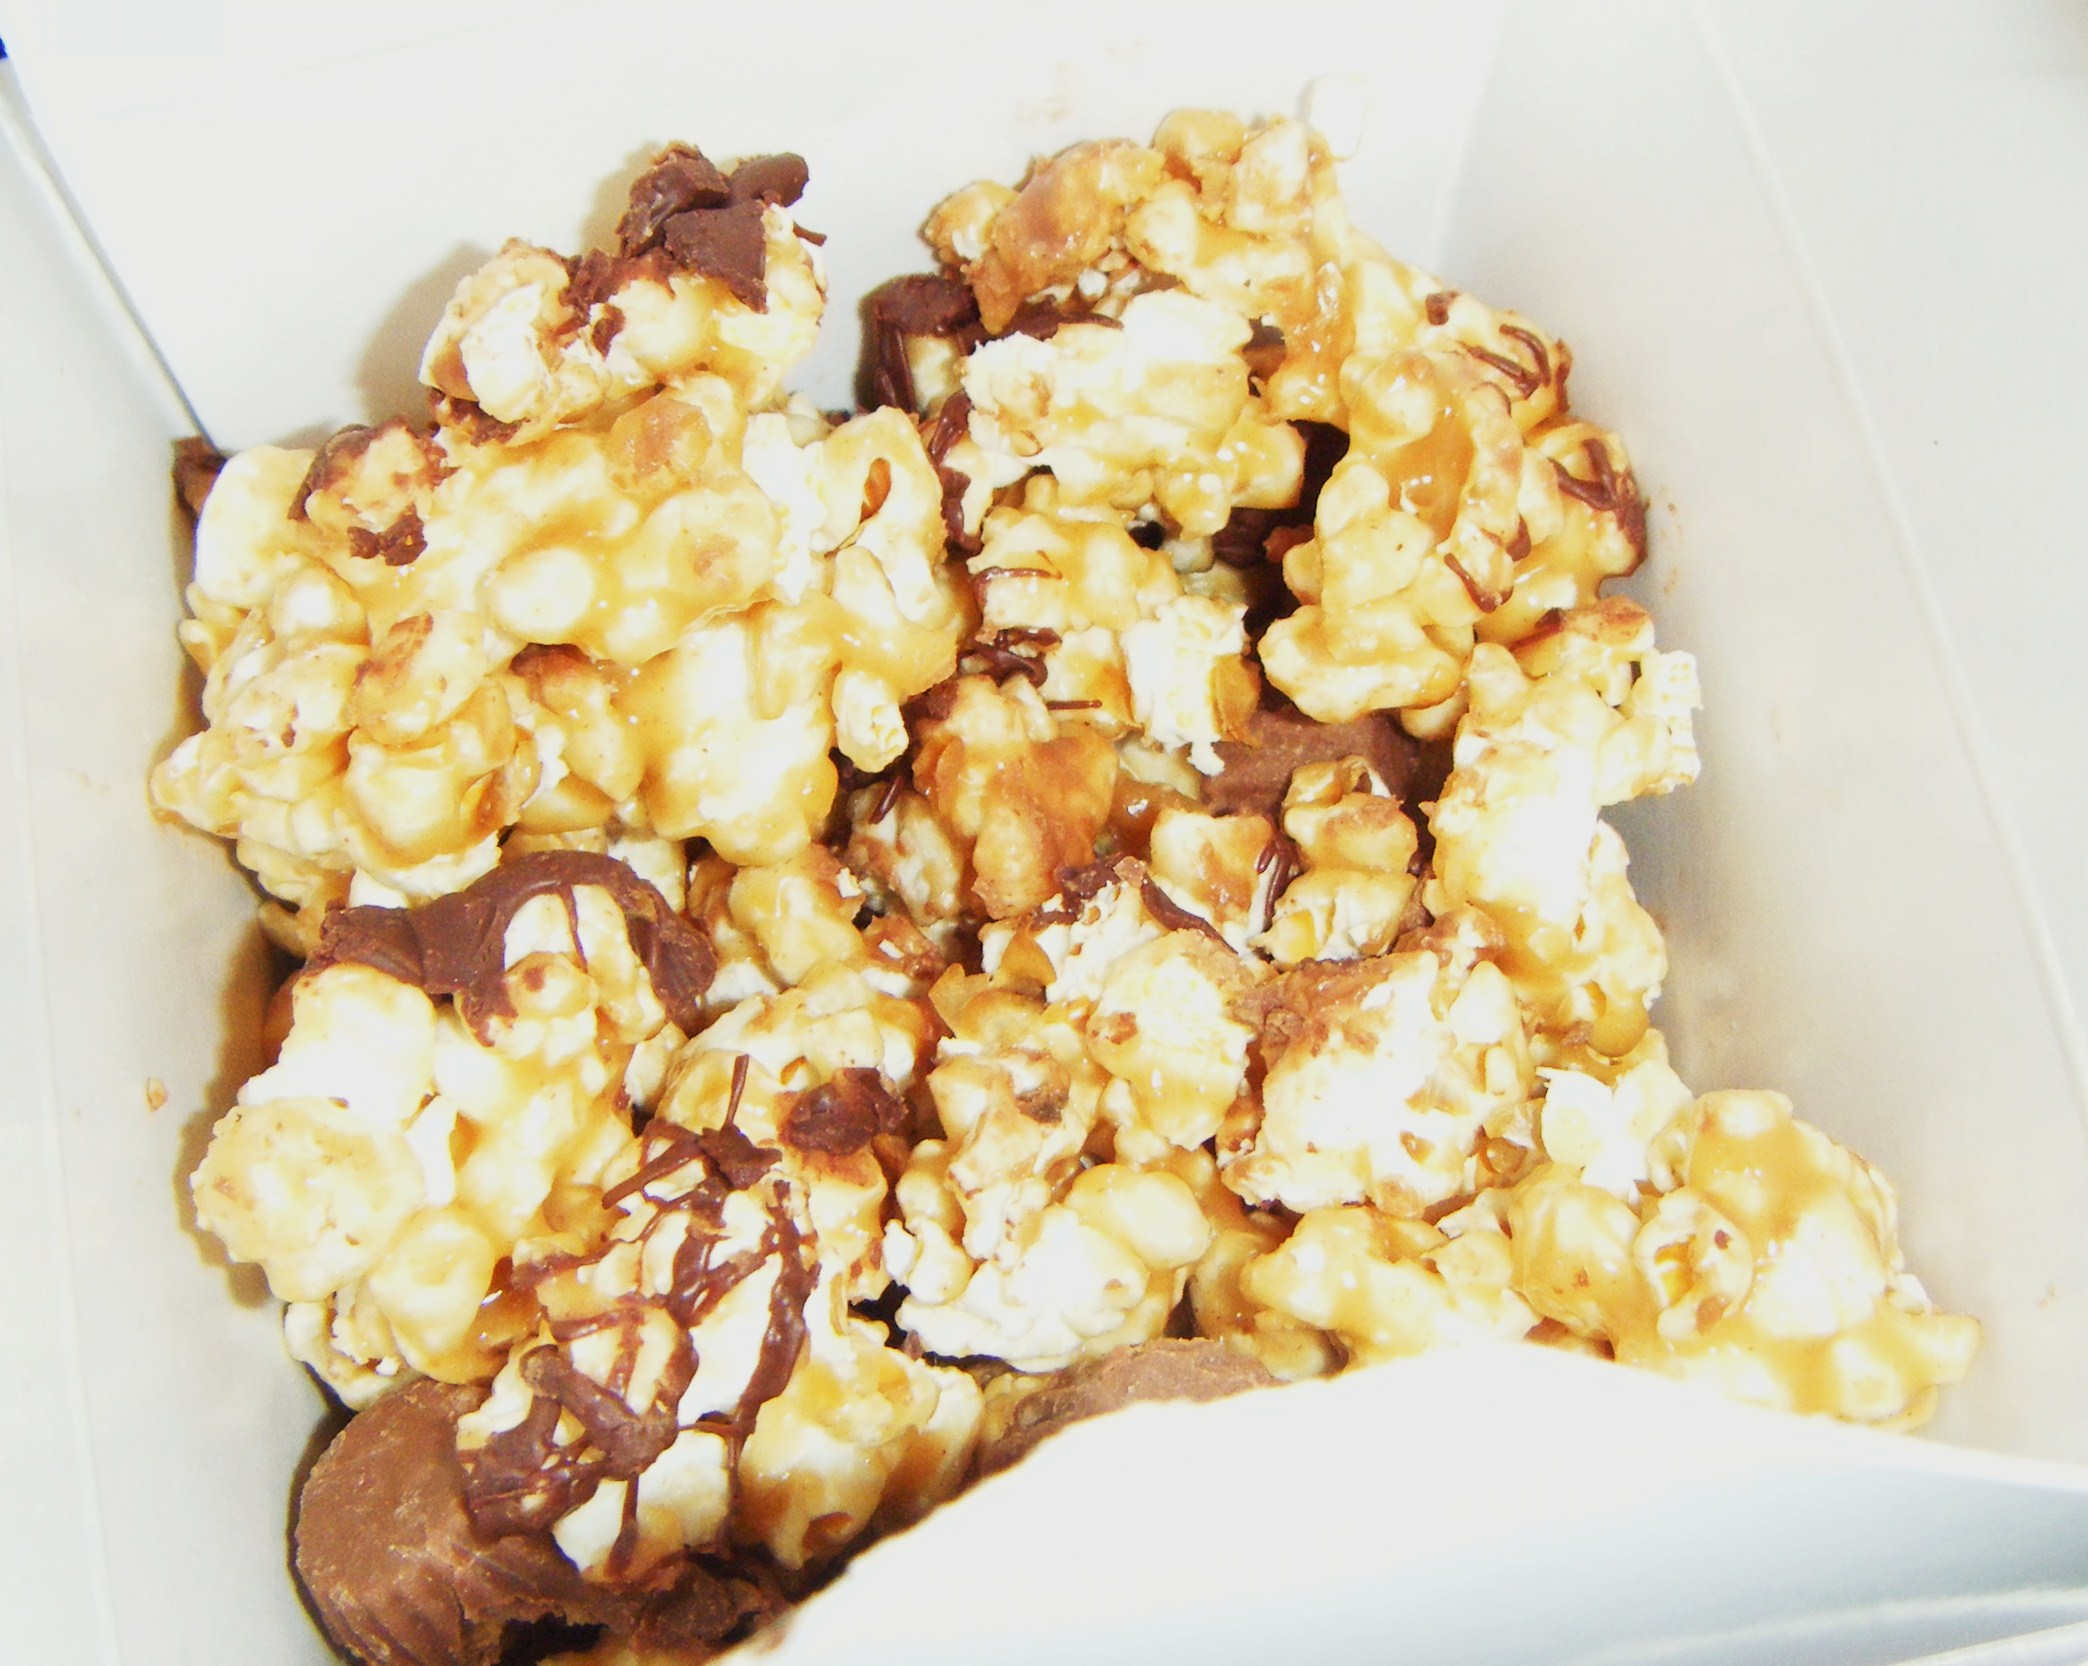 Peanut Butter Caramel Popcorn with Mini Reese's Cups | emandam